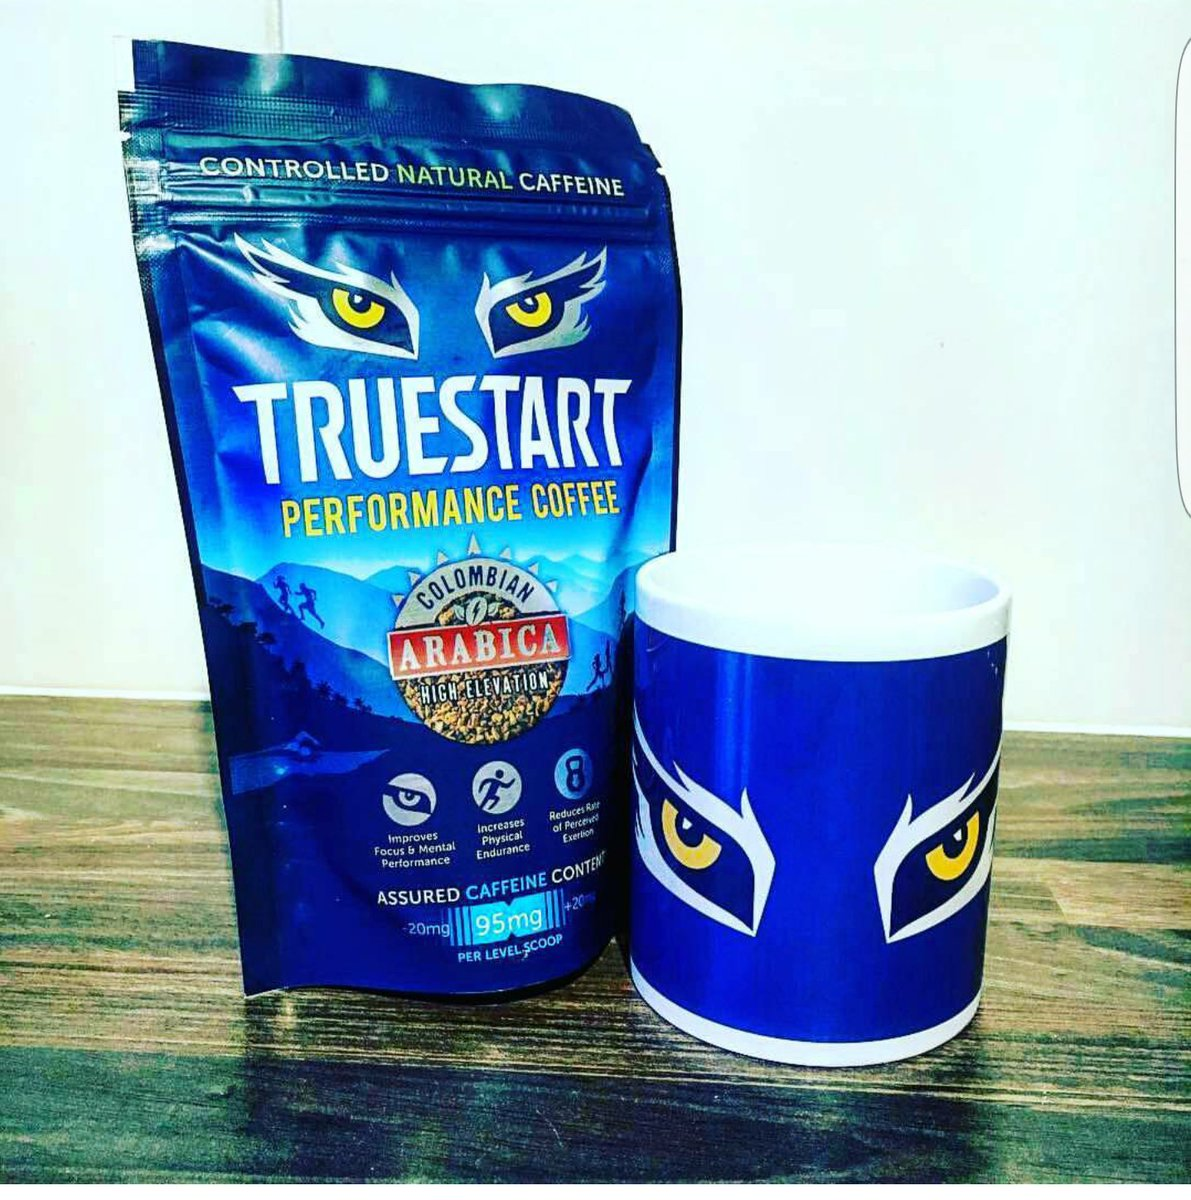 RT @melissasmithtri: Starting #Newyearsday with @TrueStartCoffee ready for some #ironmantraining https://t.co/MLBz8hcoRC